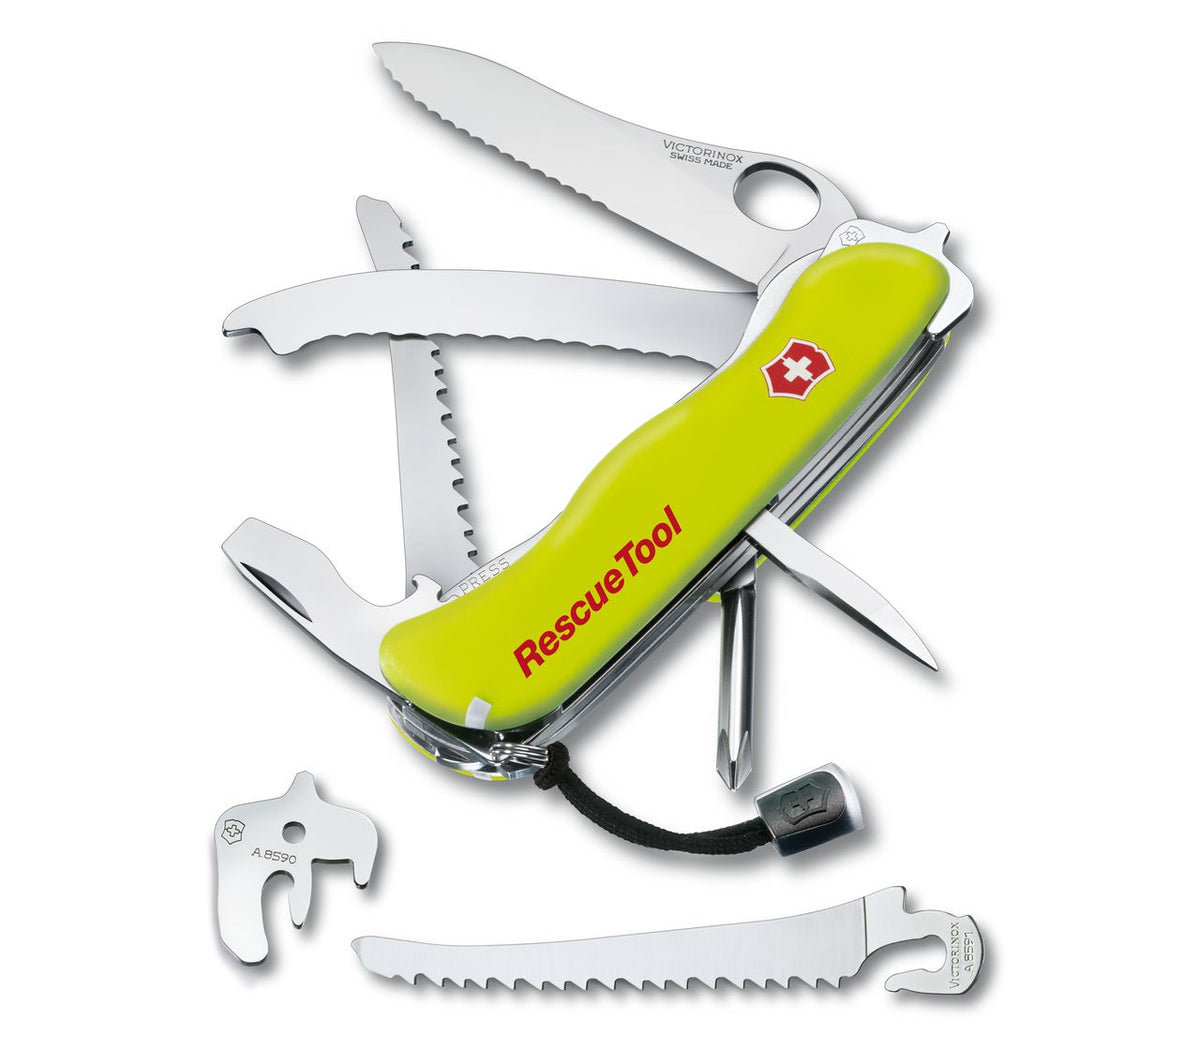 Victorinox - Large Swiss Army Knife - Rescue Tool